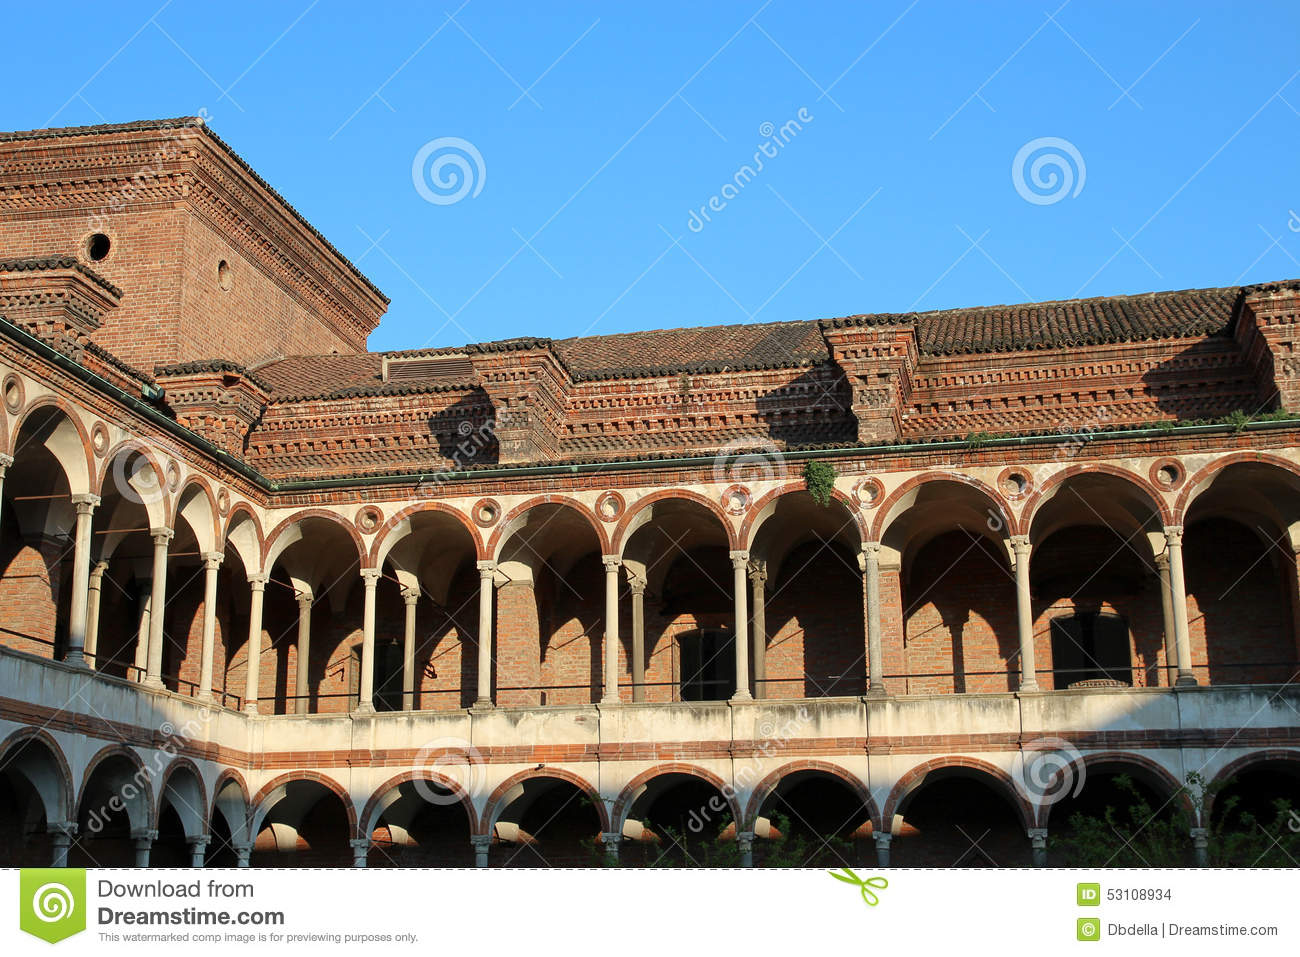 Renaissance colonnade of Milan University, Cloister of Baths - Lombardy